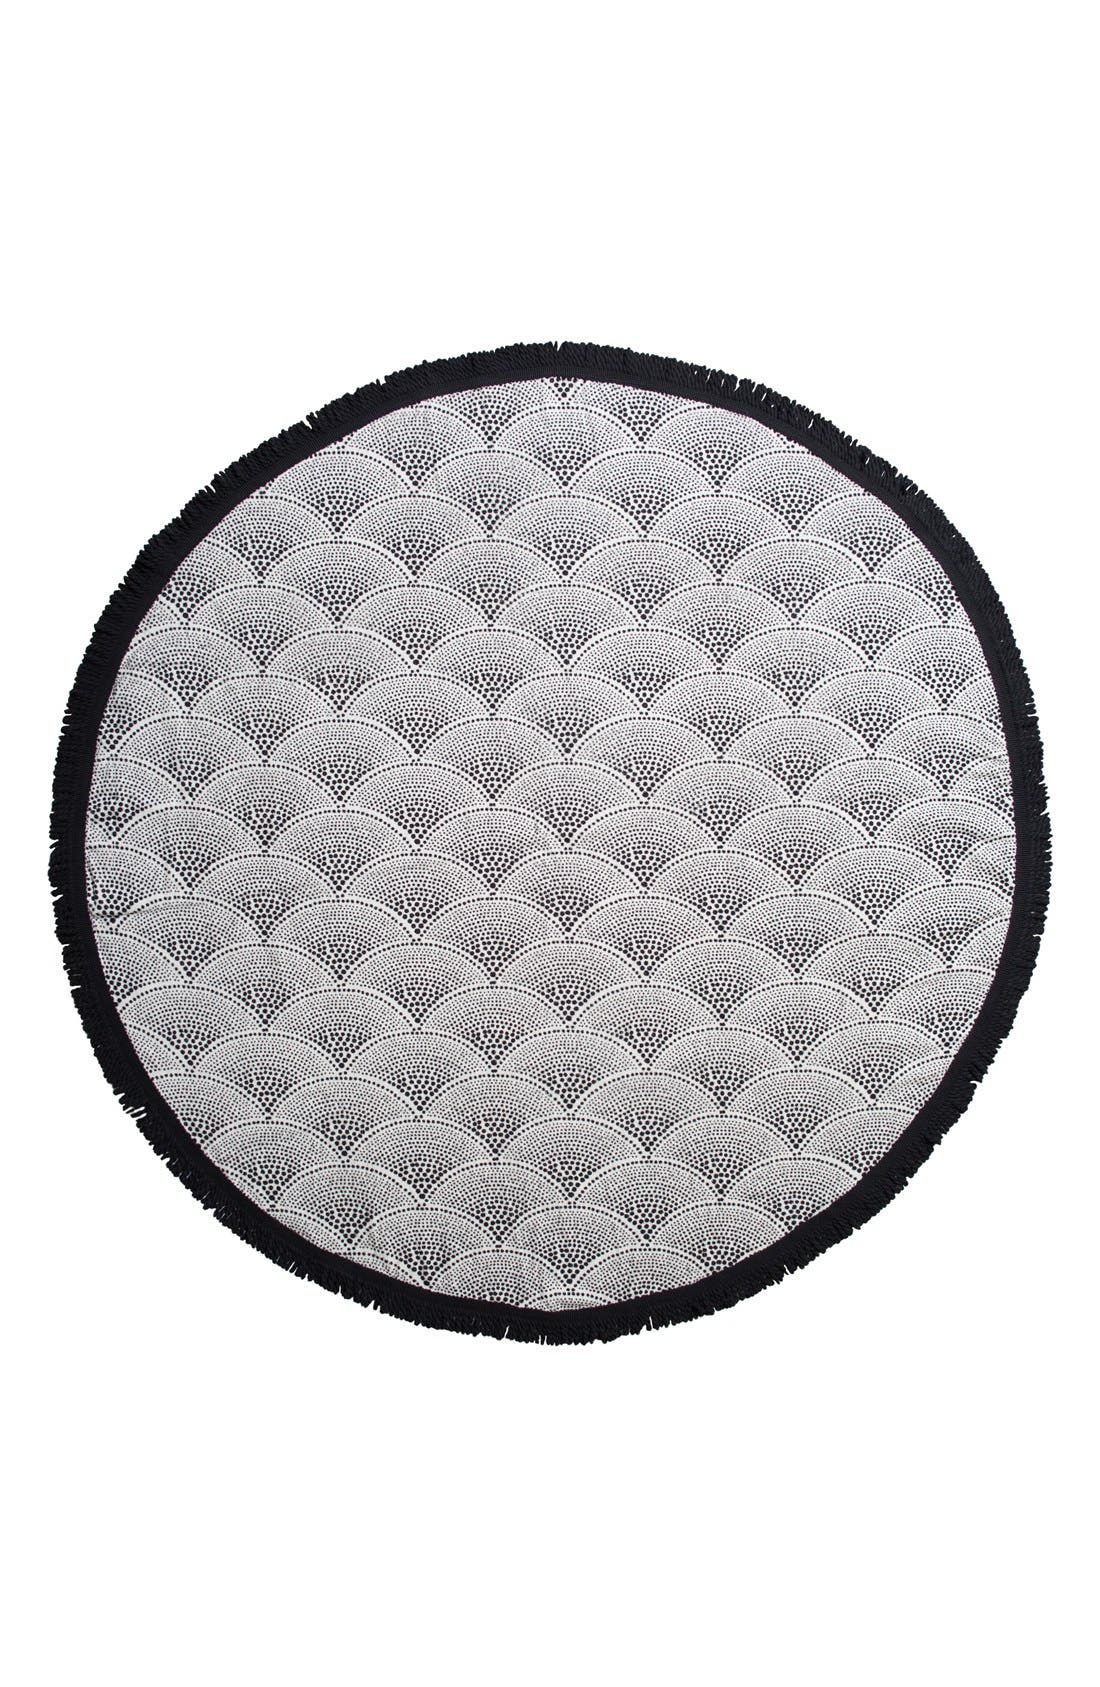 'Amaroo' Round Beach Towel,                             Main thumbnail 1, color,                             Black